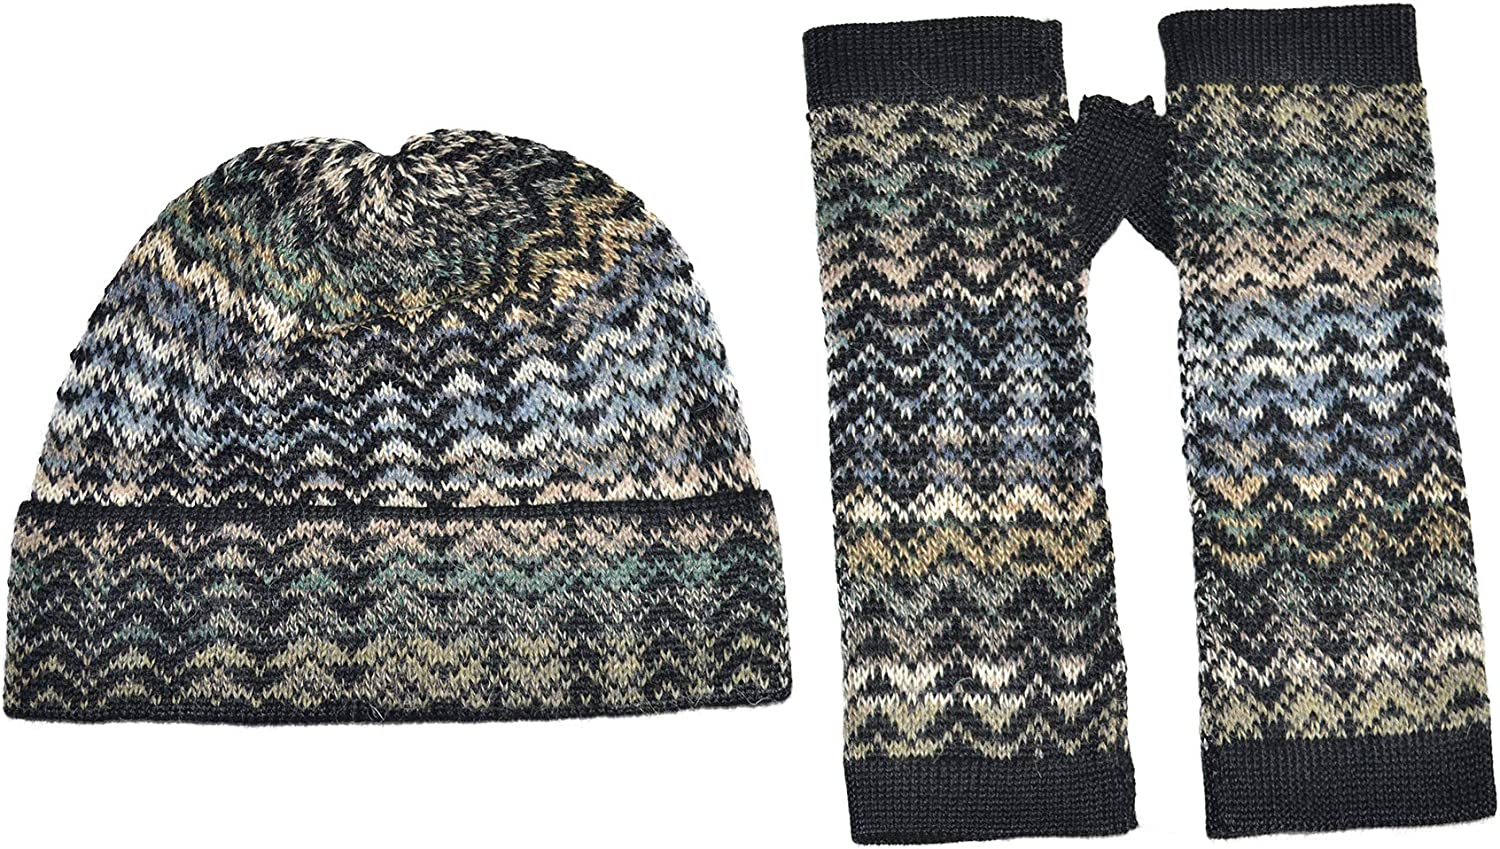 Invisible World Women's Alpaca Wool Fingerless Glove and Hat Sets Knit Winter Noelle Set